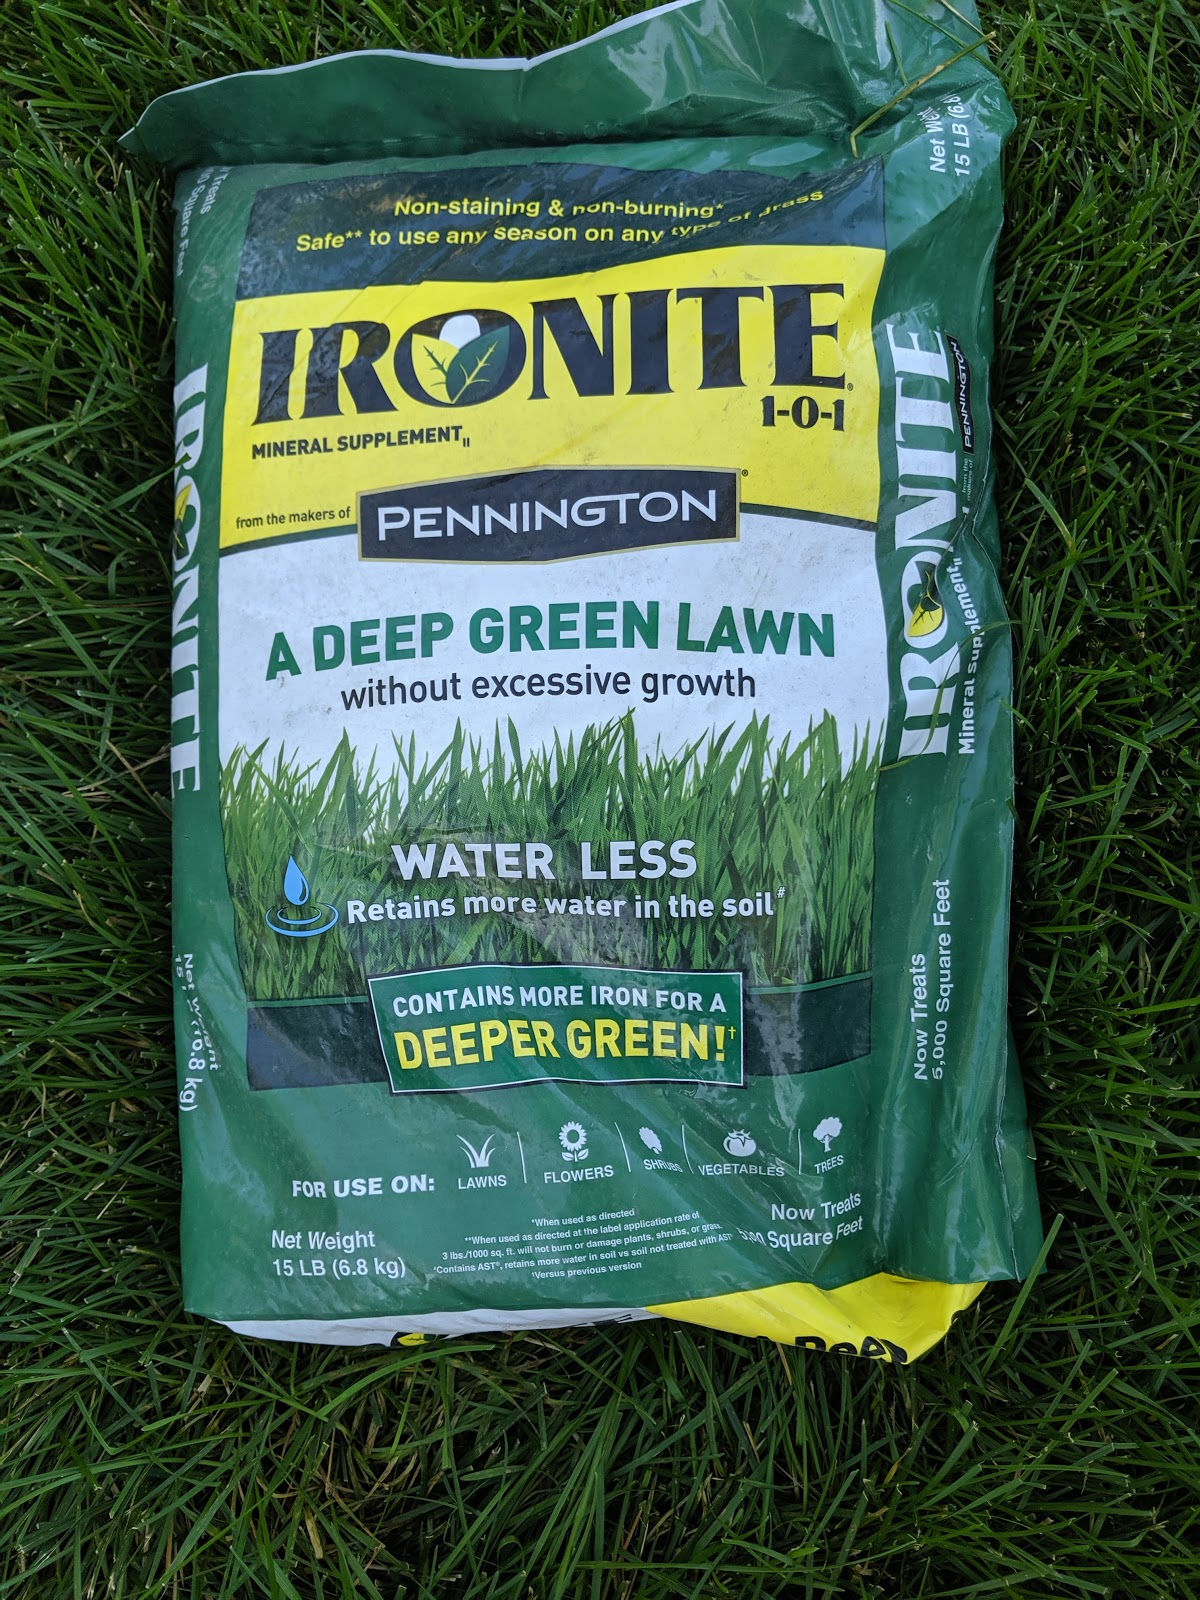 What Is Ironite